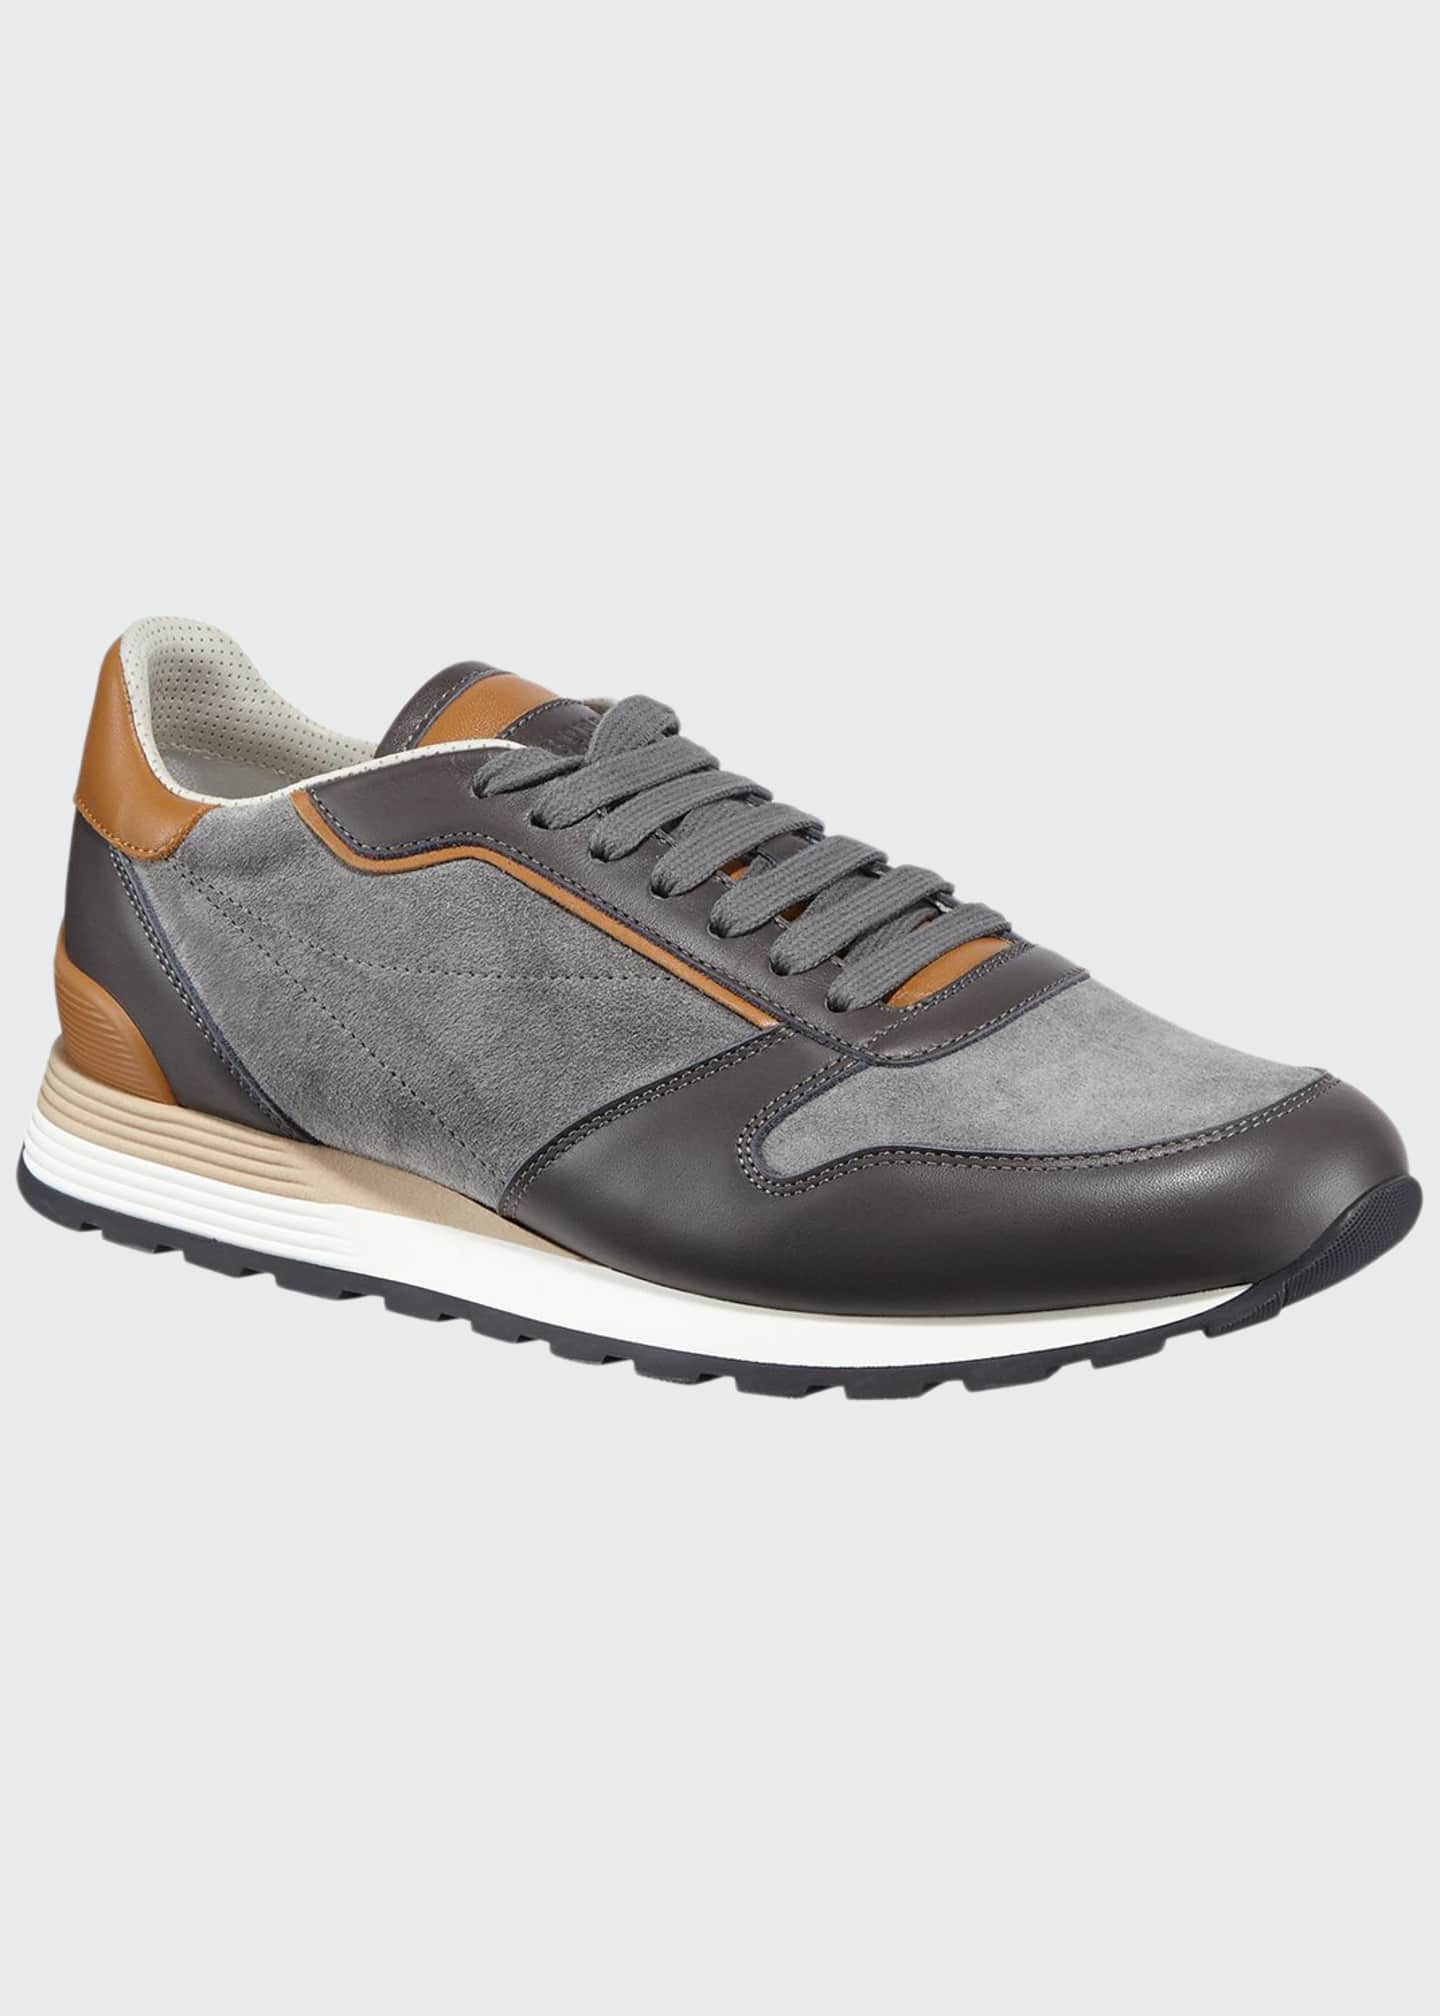 Image 1 of 3: Men's Suede & Leather Athletic Sneakers